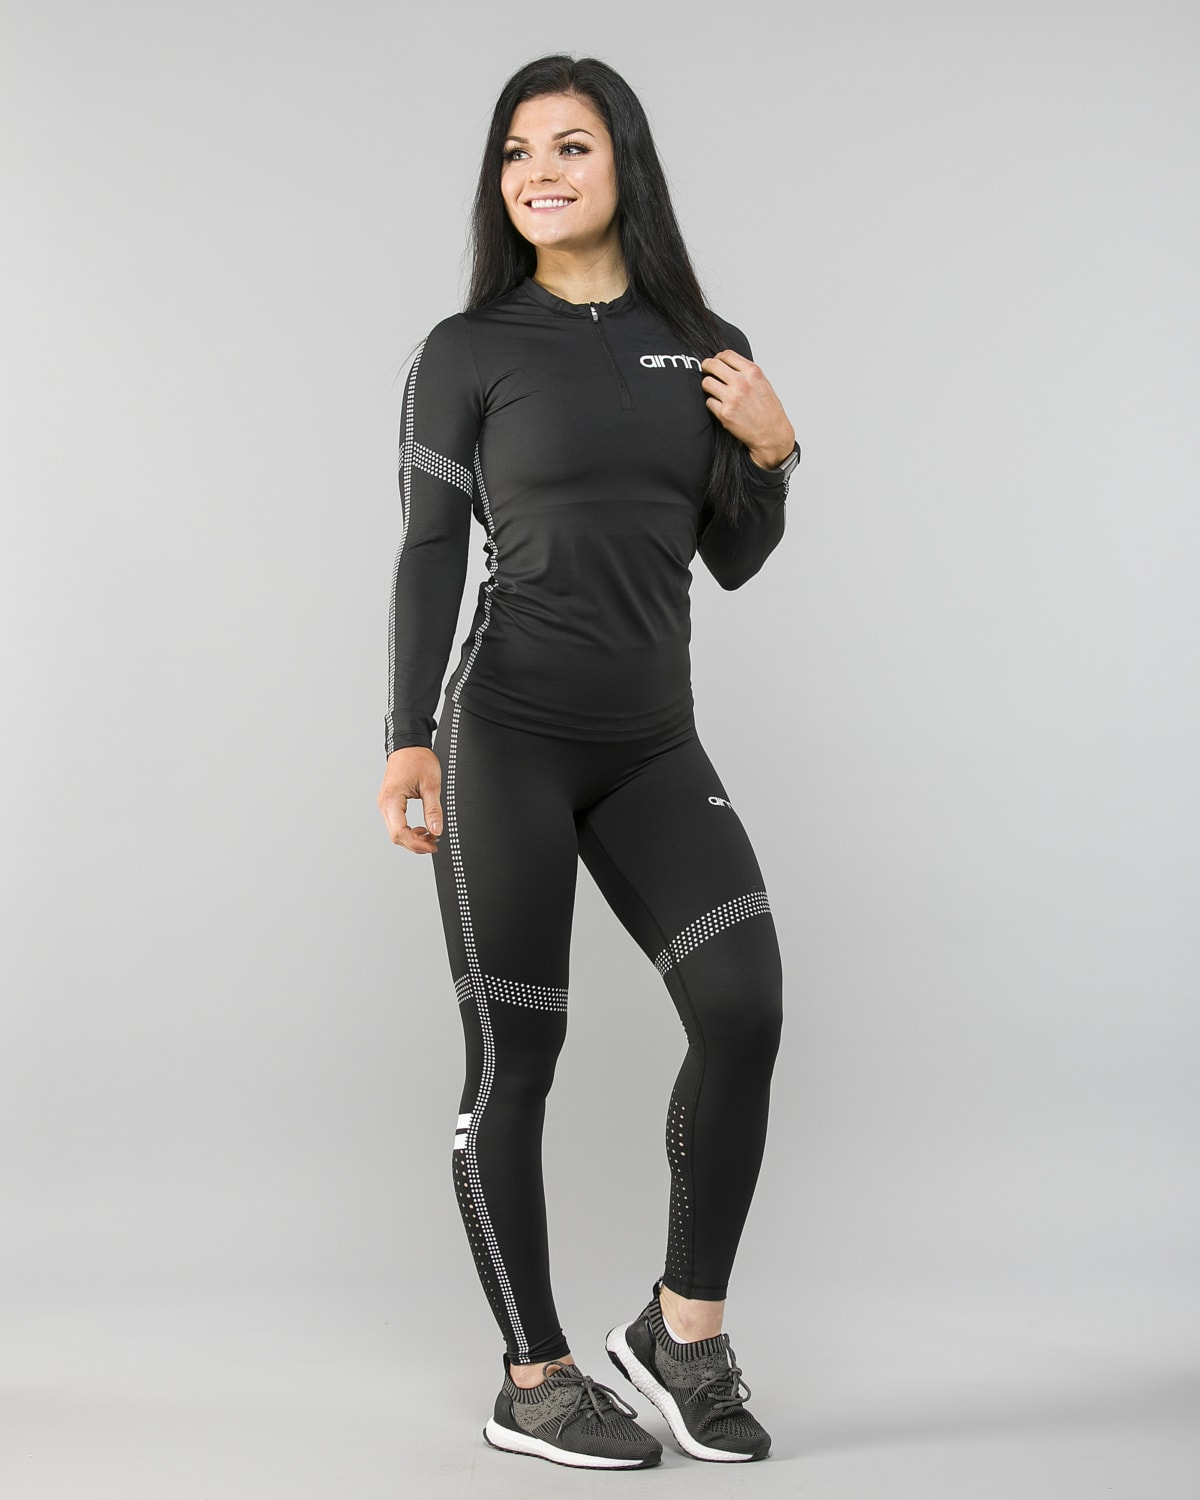 Aim'n Vision Long Sleeve and Tights